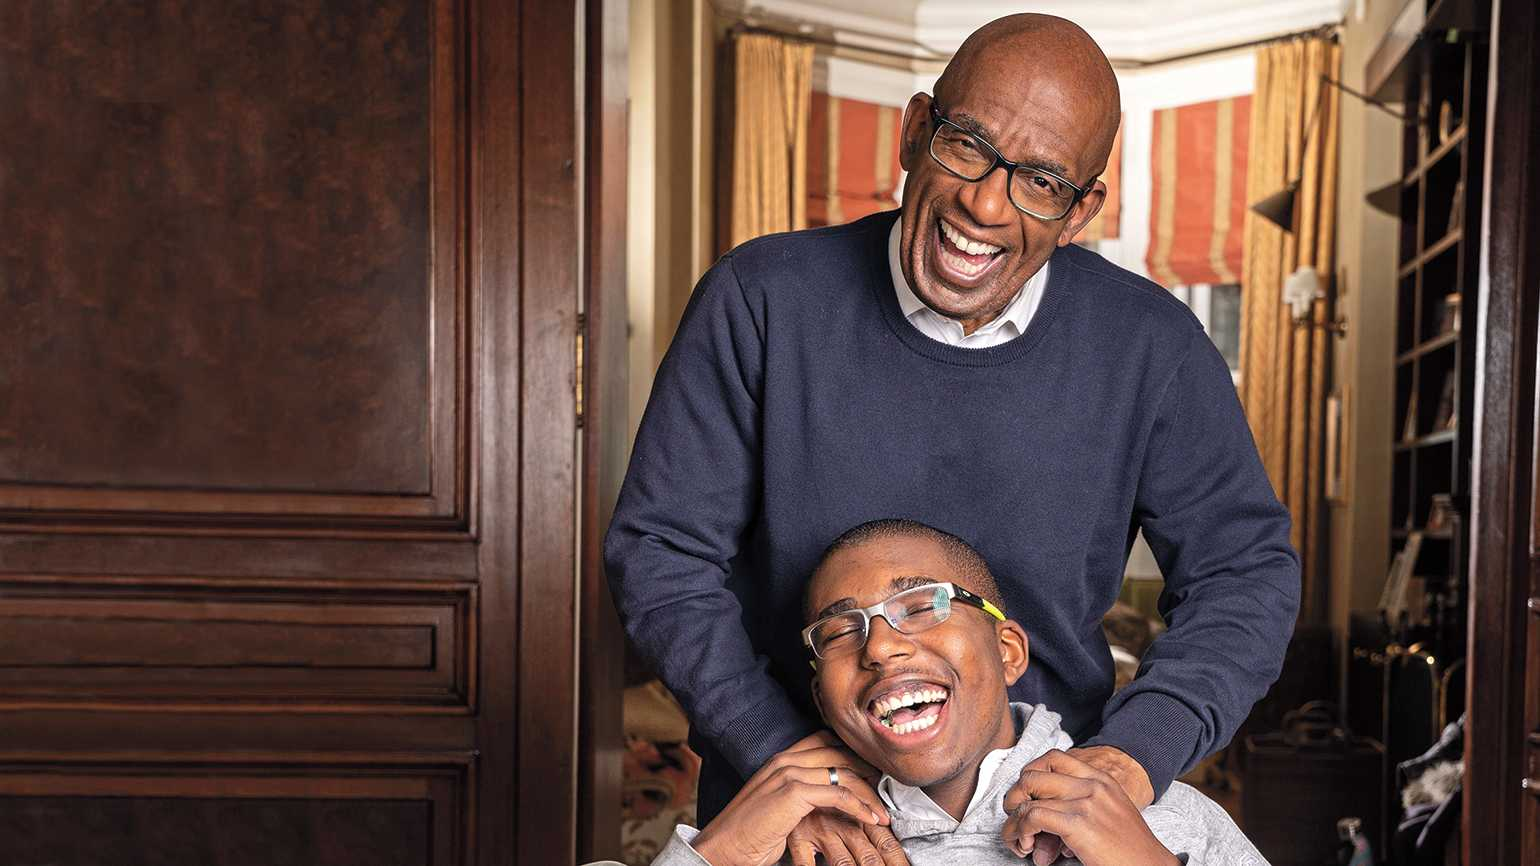 The Today Show's Al Roker with his son, Nick